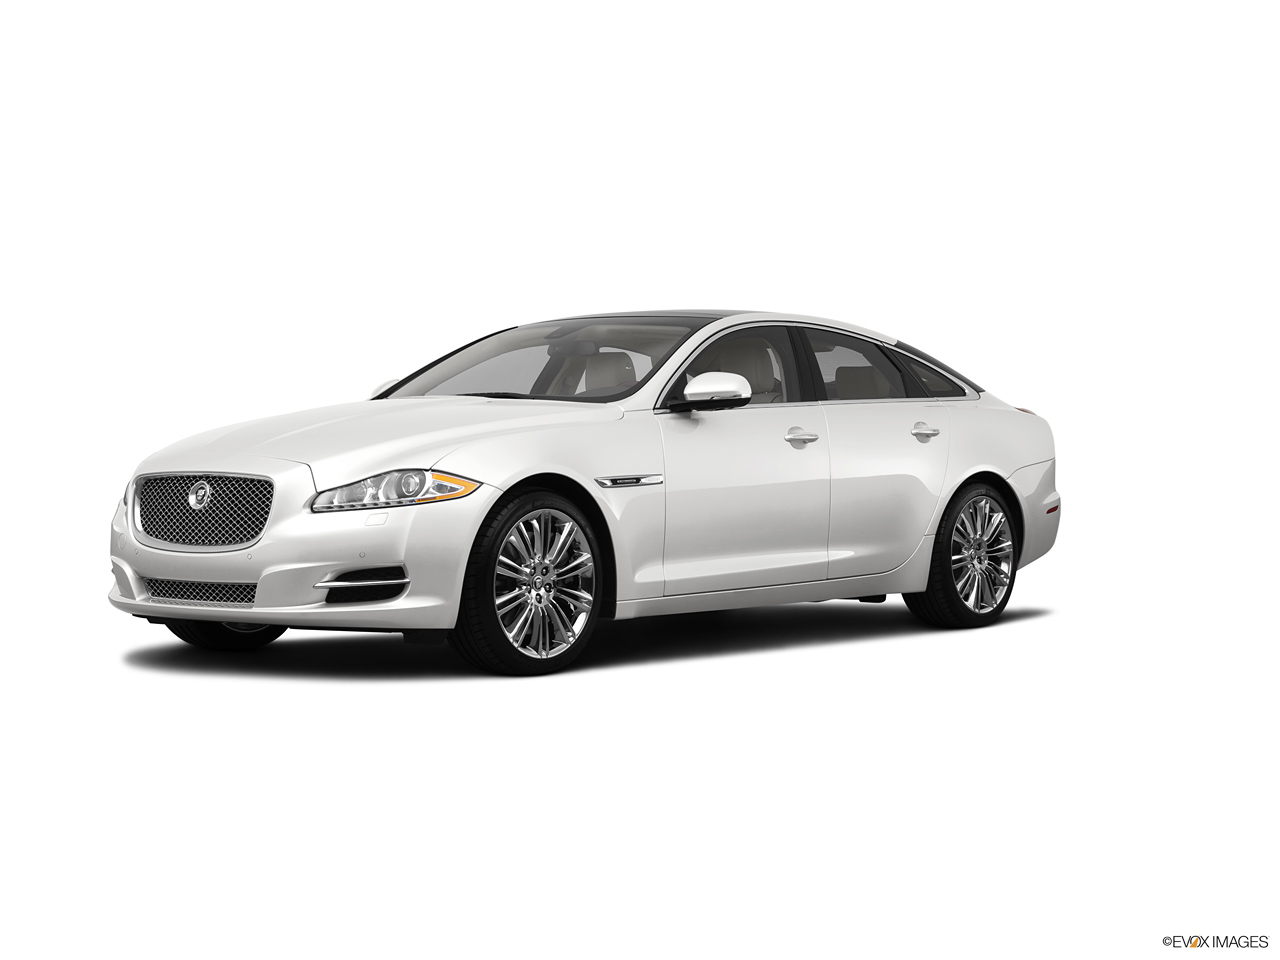 hight resolution of jaguar service by top rated mechanics at the convenience of your home or office